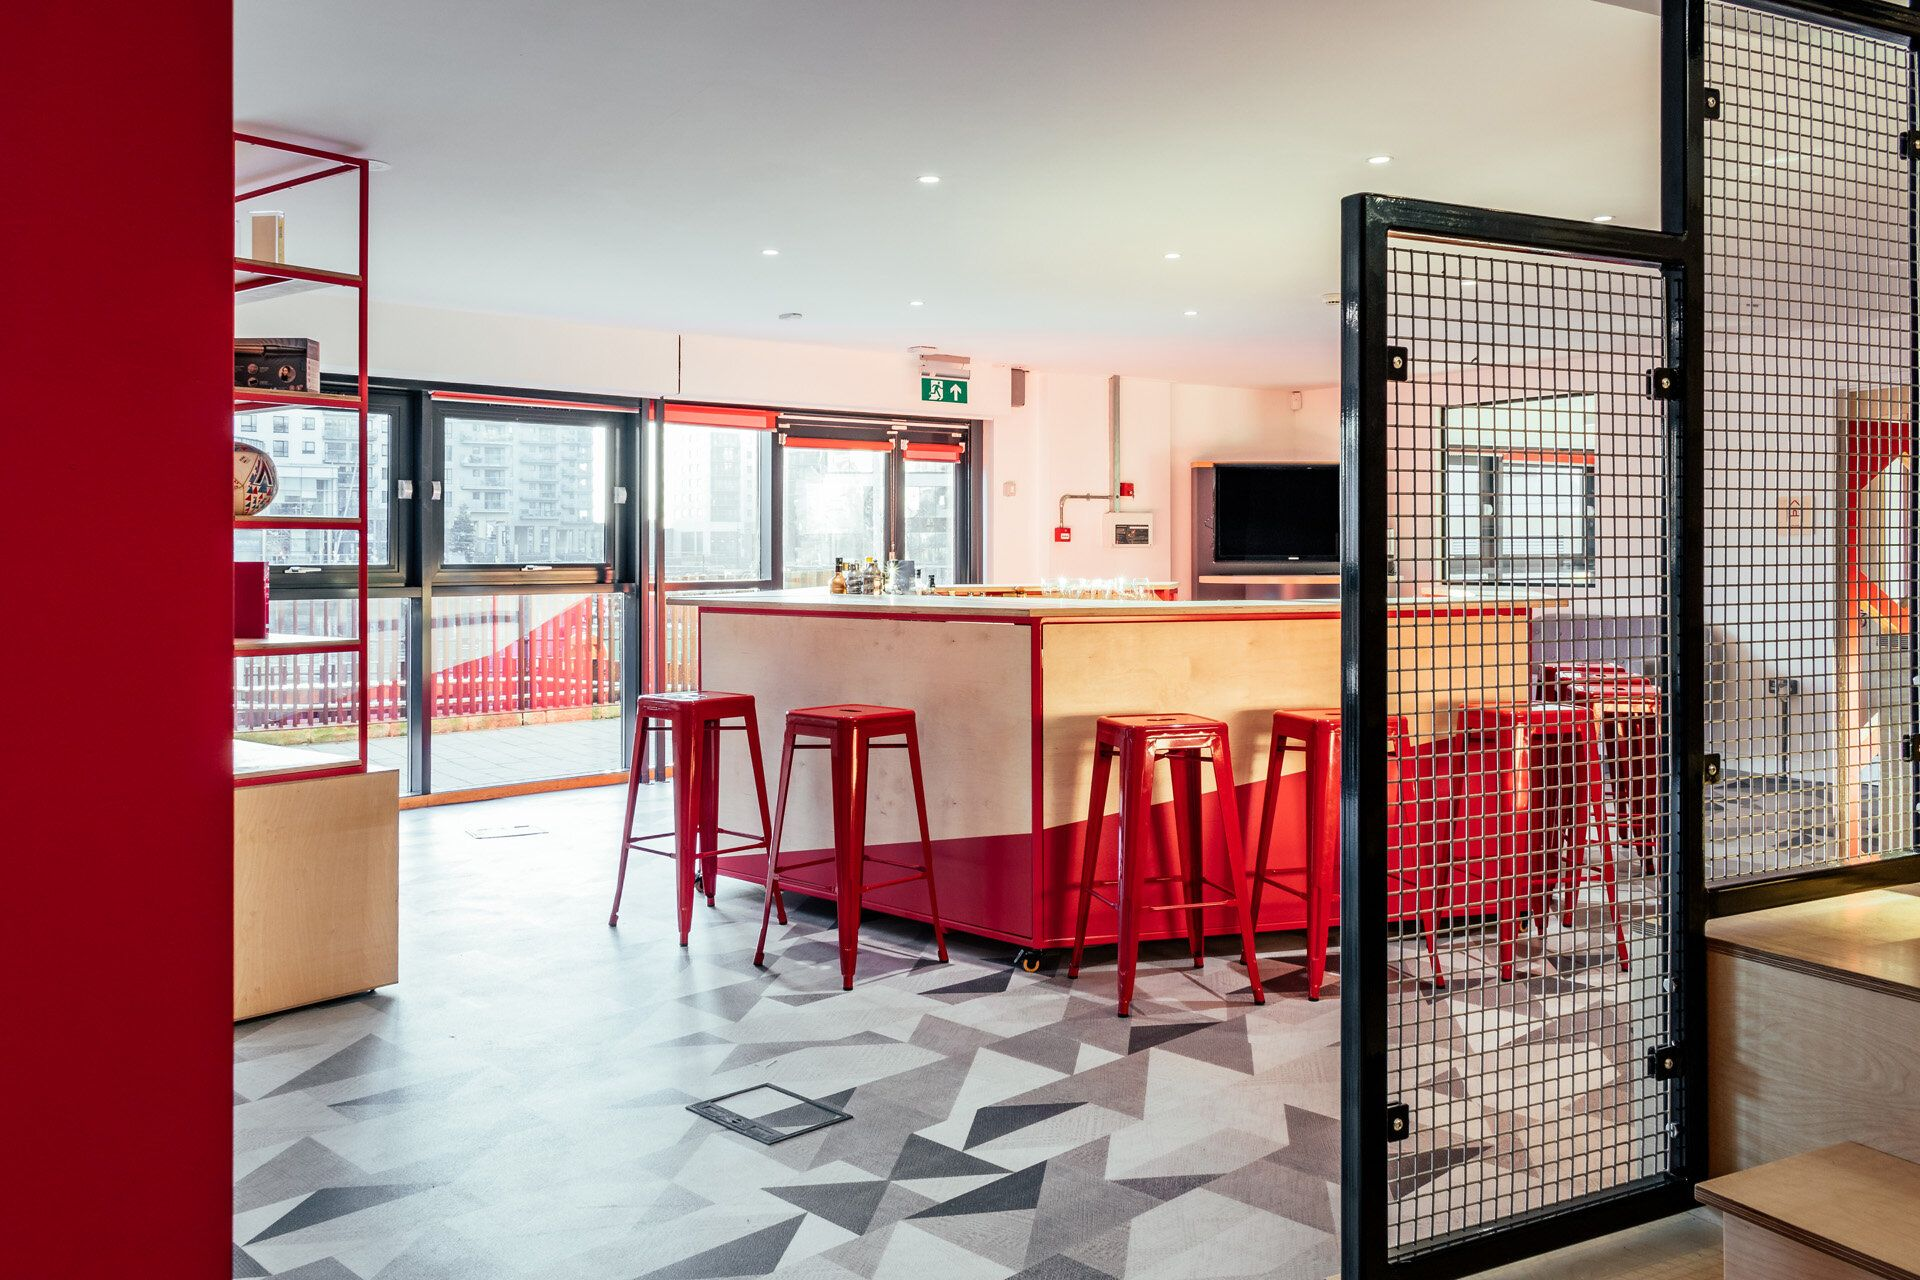 Hatch Communications Absolute Commercial Interiors in